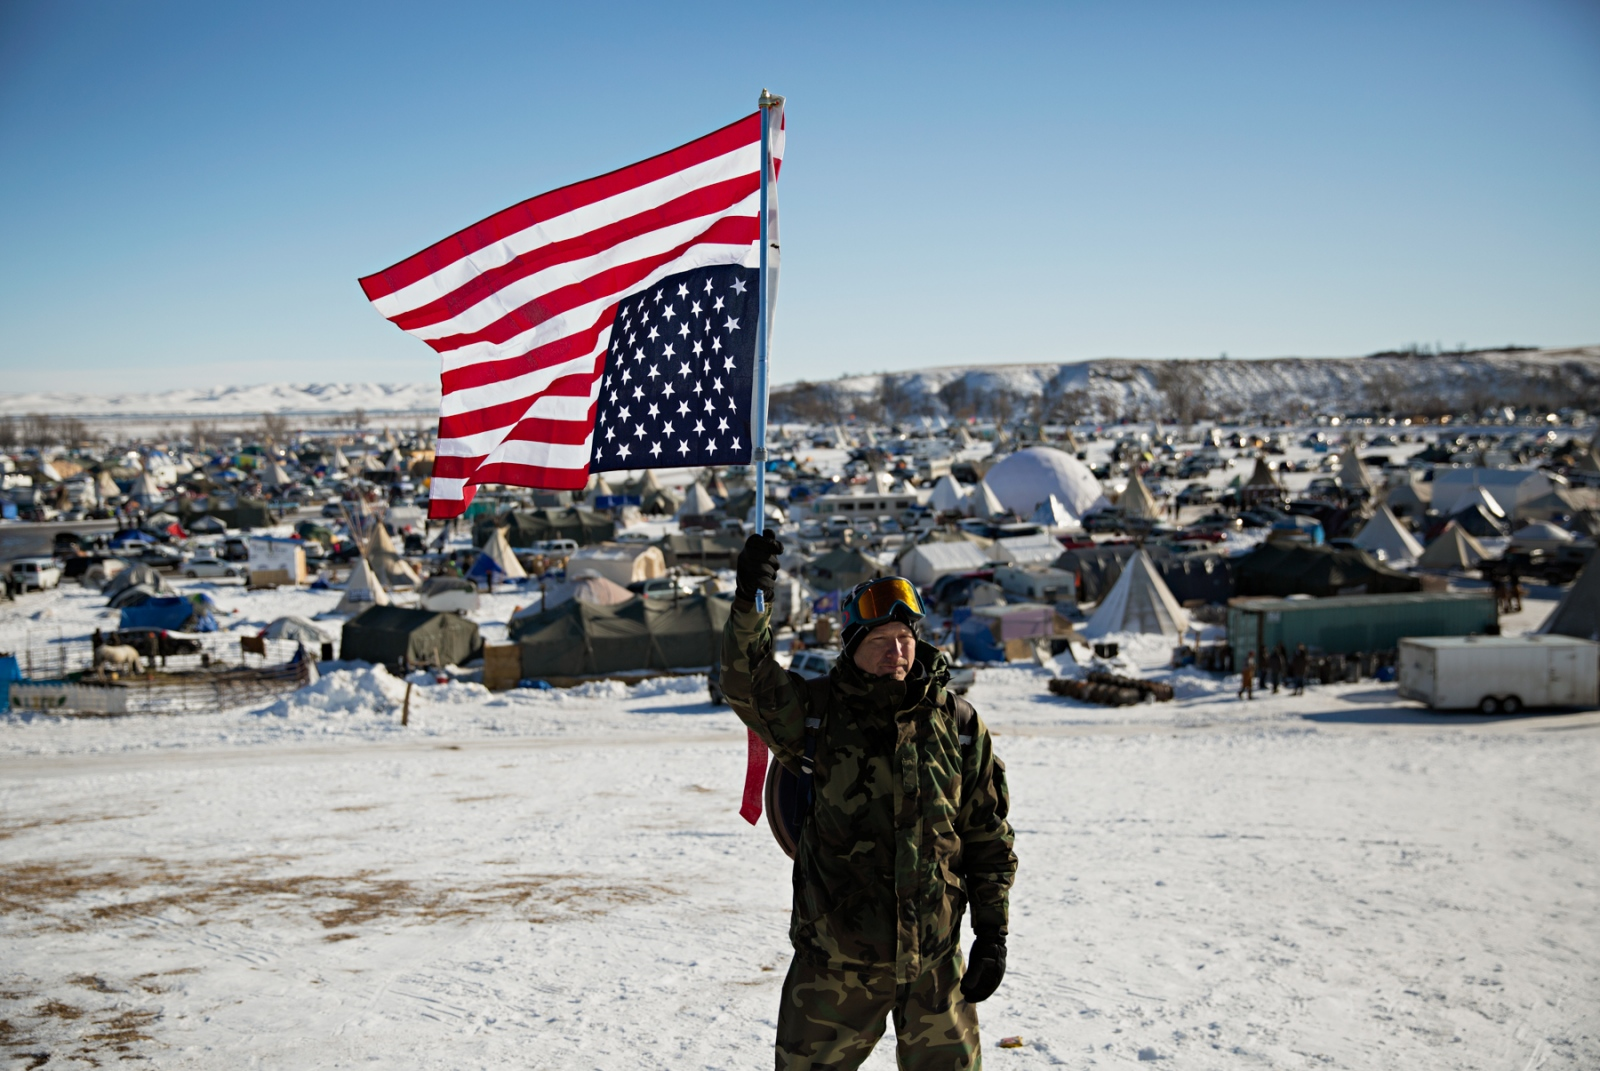 """Sargent Roger Hintson, a Marine Core veteran from San Francisco, CA, holds the US Flag in distress because while he served his country under the correct flag, """"I believe America is now in distress."""" Sgt. Hinston is part of an estimated 2000 veterans who traveled to the camp to provide protection for the Water Protectors against the law enforcement whose methods he considers excessive."""